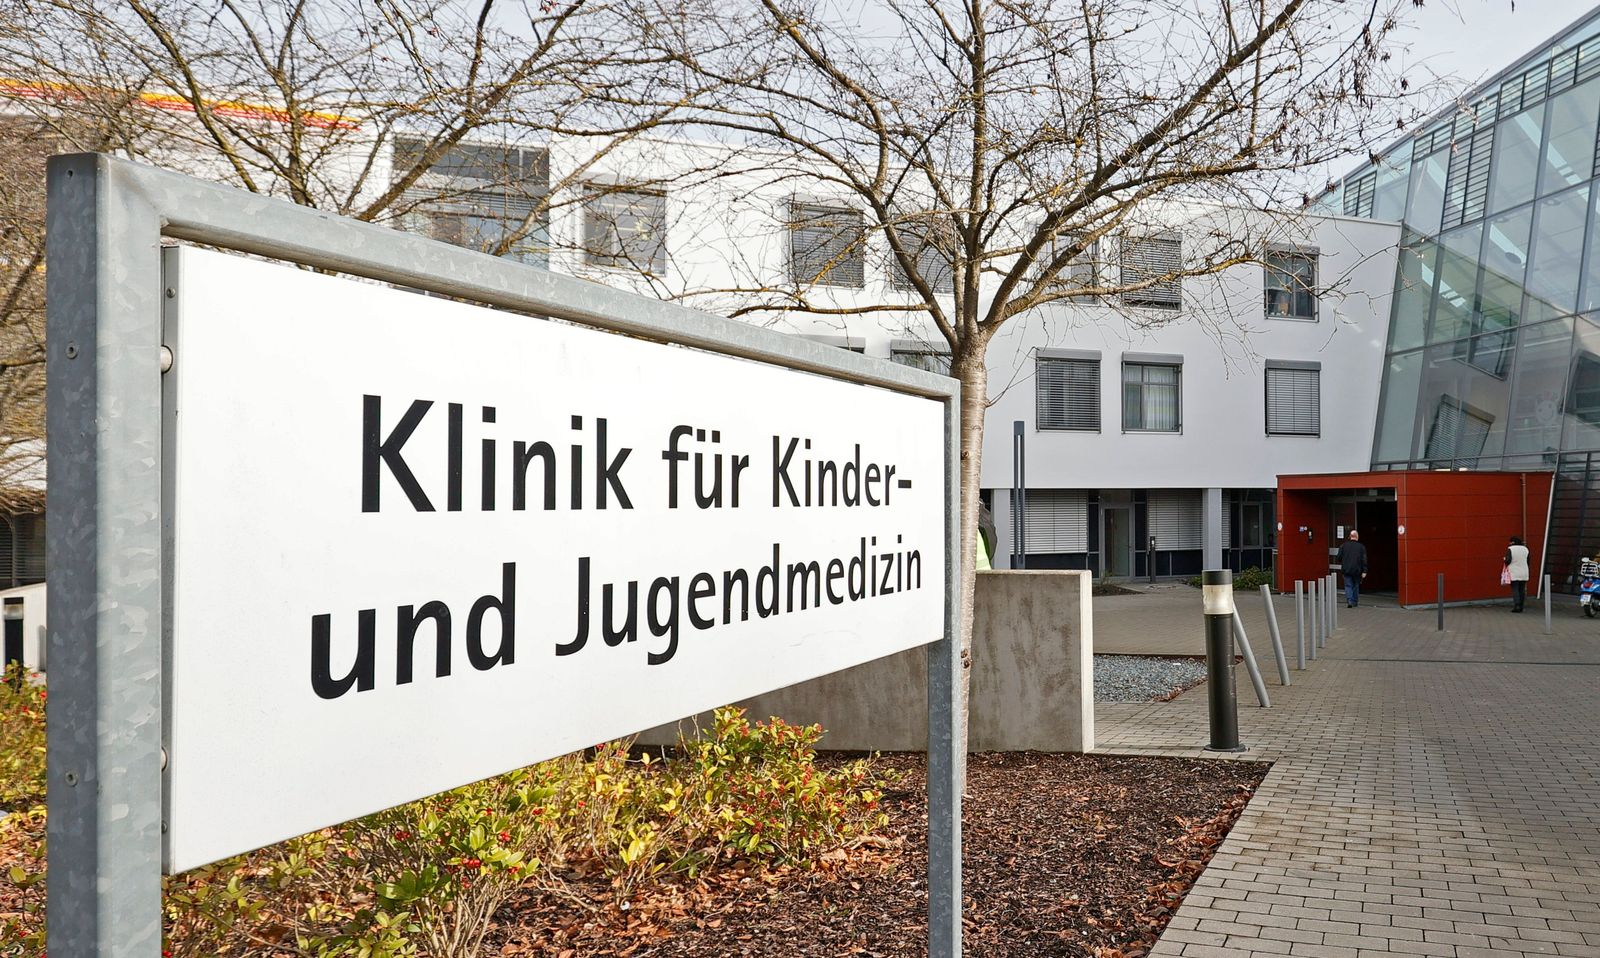 University Hospital for Children and Youth Medicine in Ulm, Germany - 30 Jan 2020